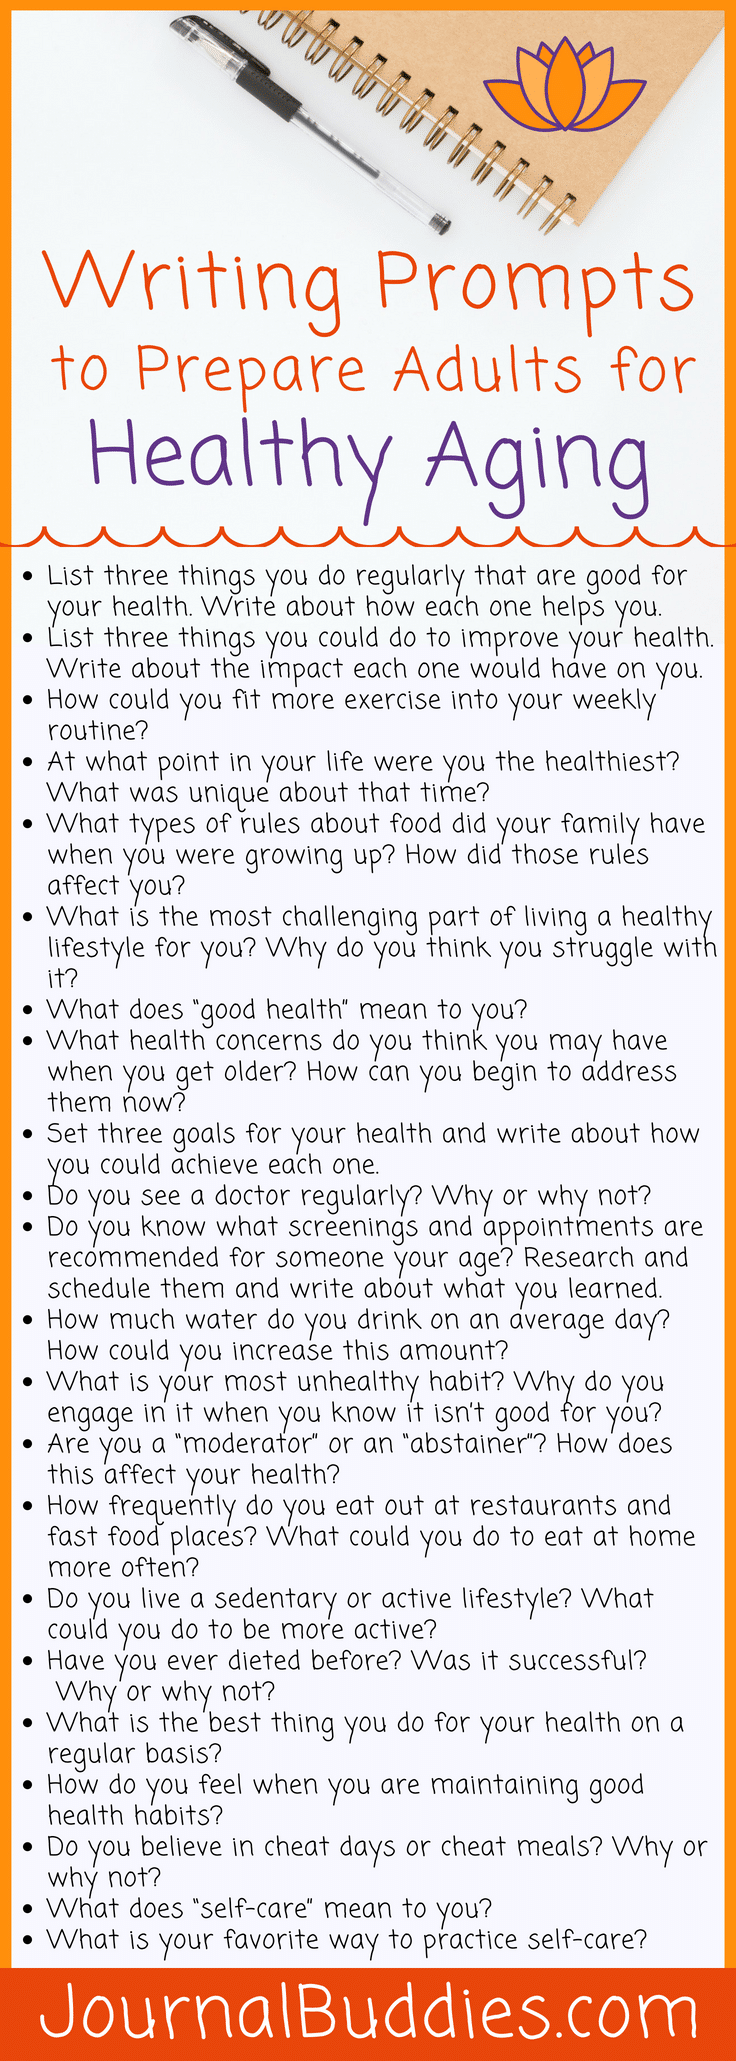 September is Healthy Aging Month and it's the perfect time for adults to take some time to reflect on all aspects of their health.